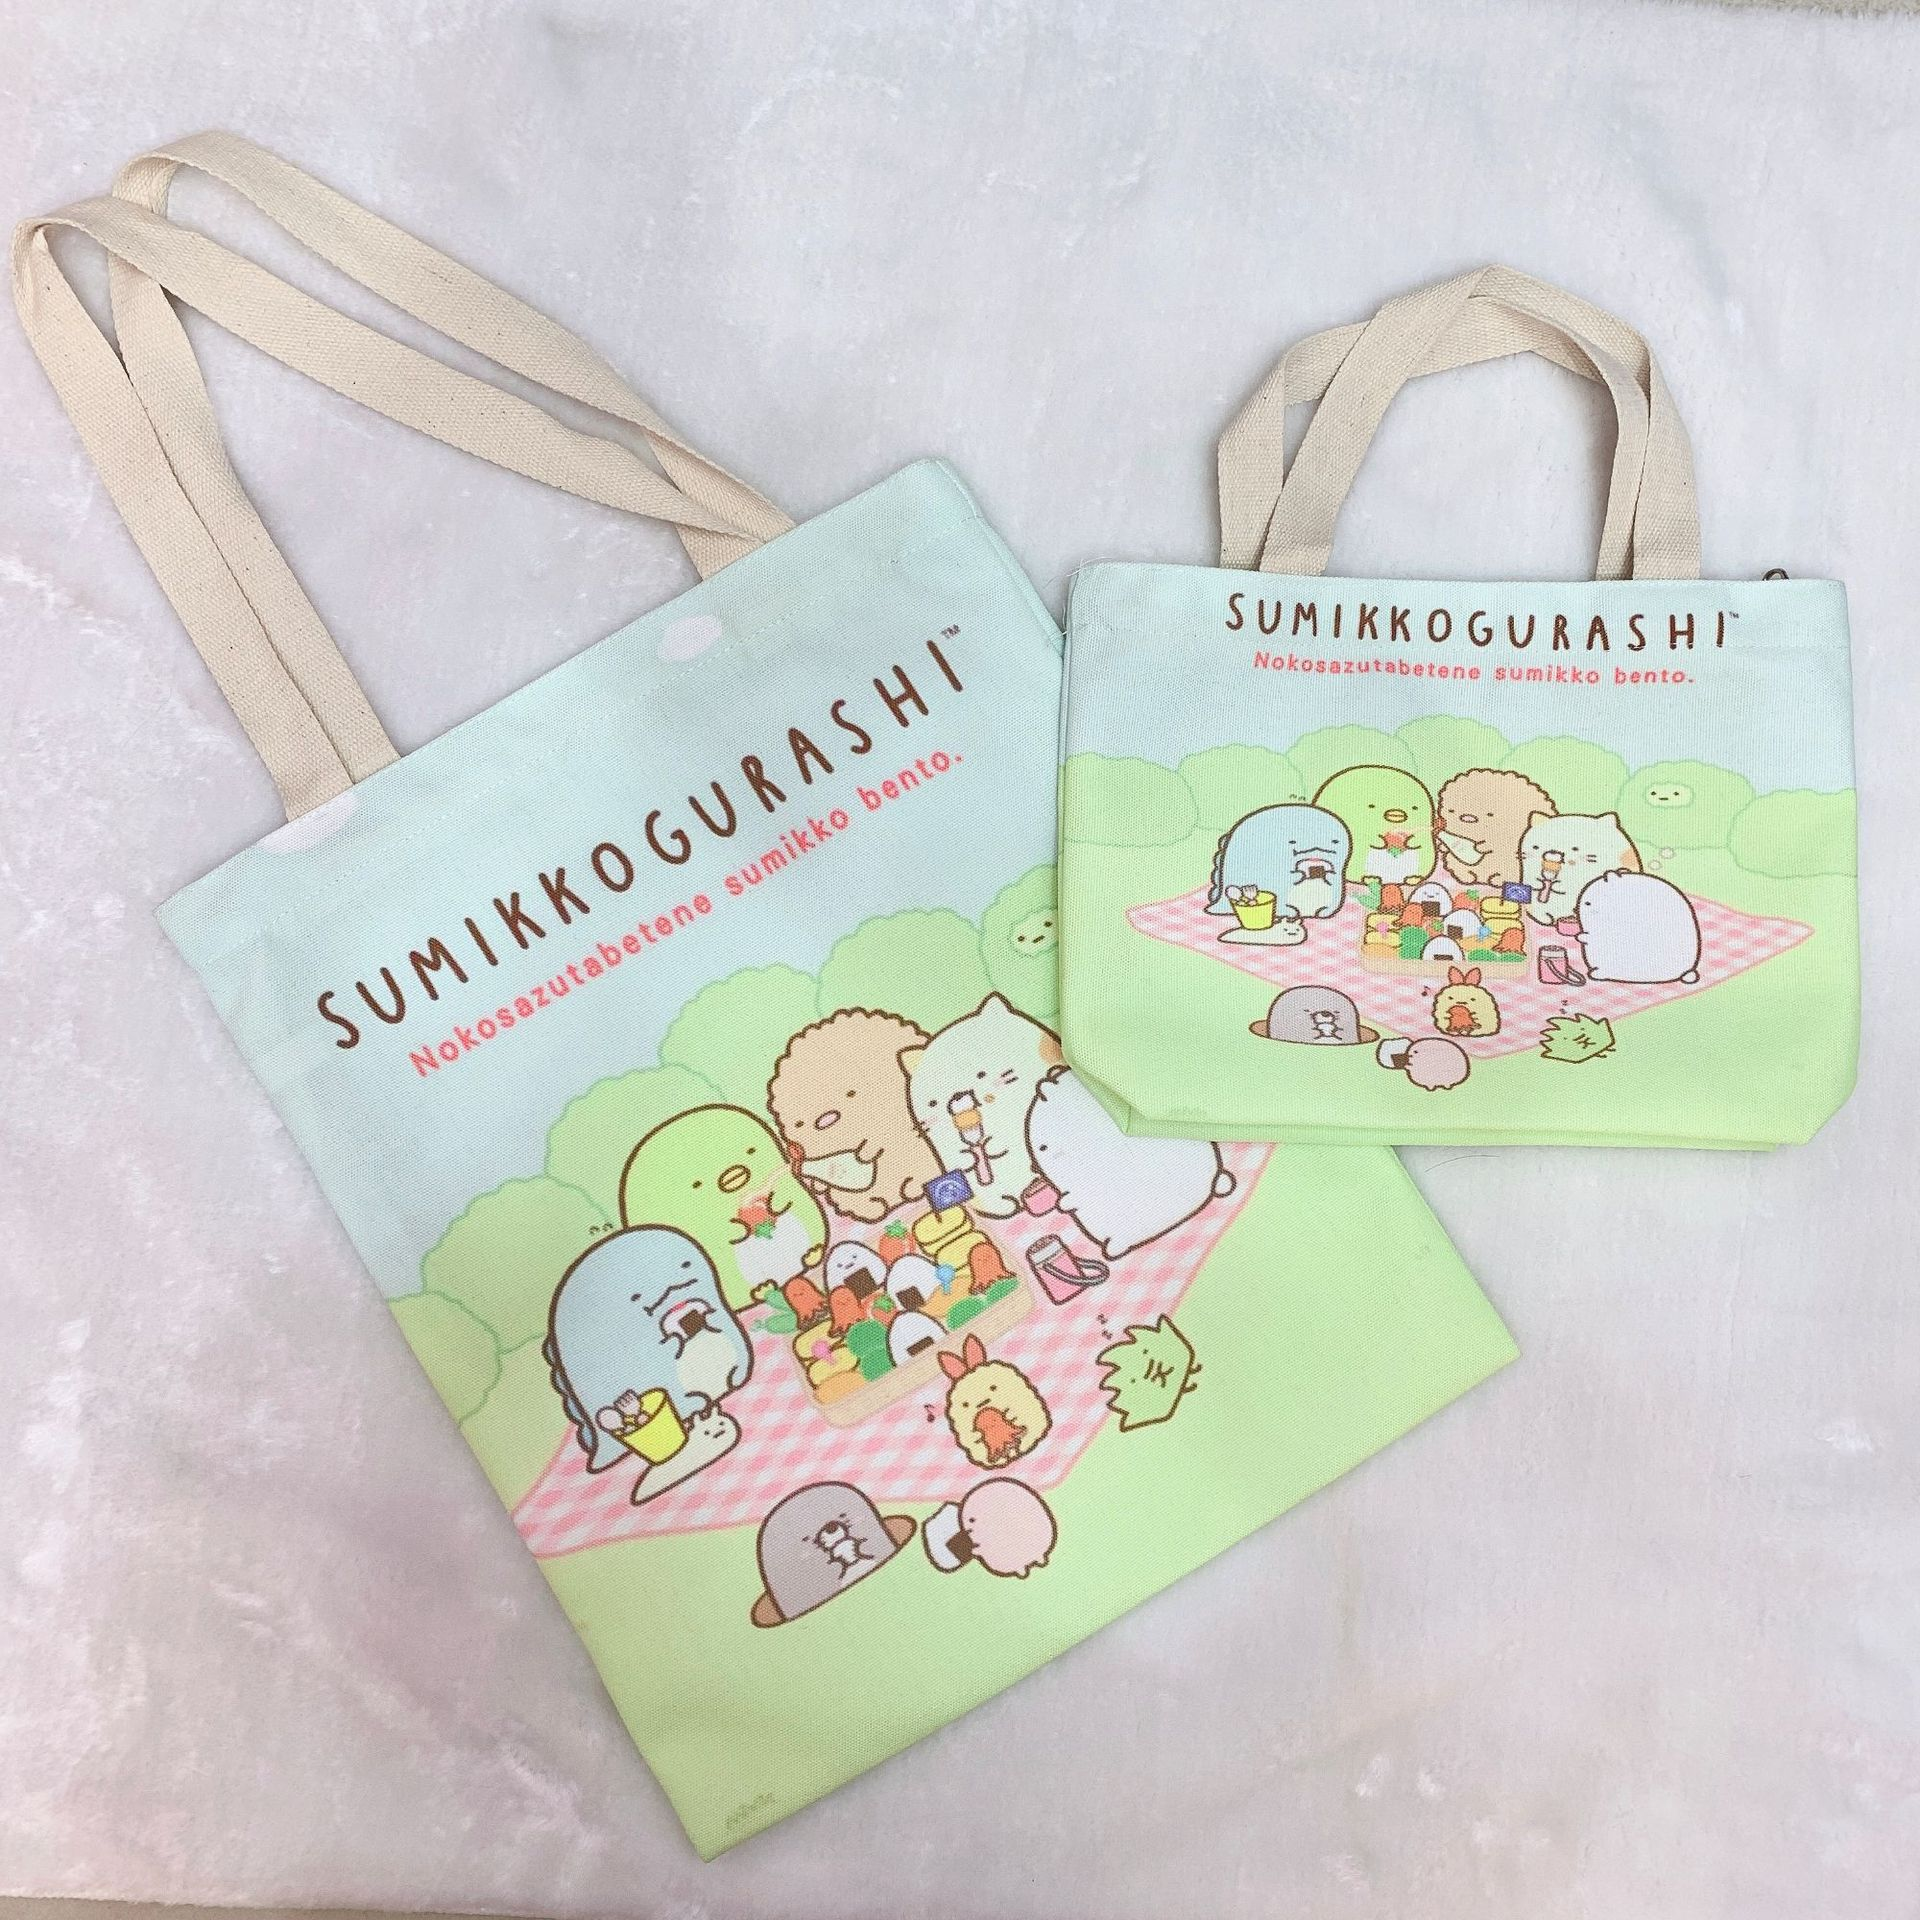 Sumikko Gurashi Fashion Anime Shoulder Bag Women Girl Casual Reusable Tote Cartoon Cute Foldable Canvas Shopping Storage Handbag